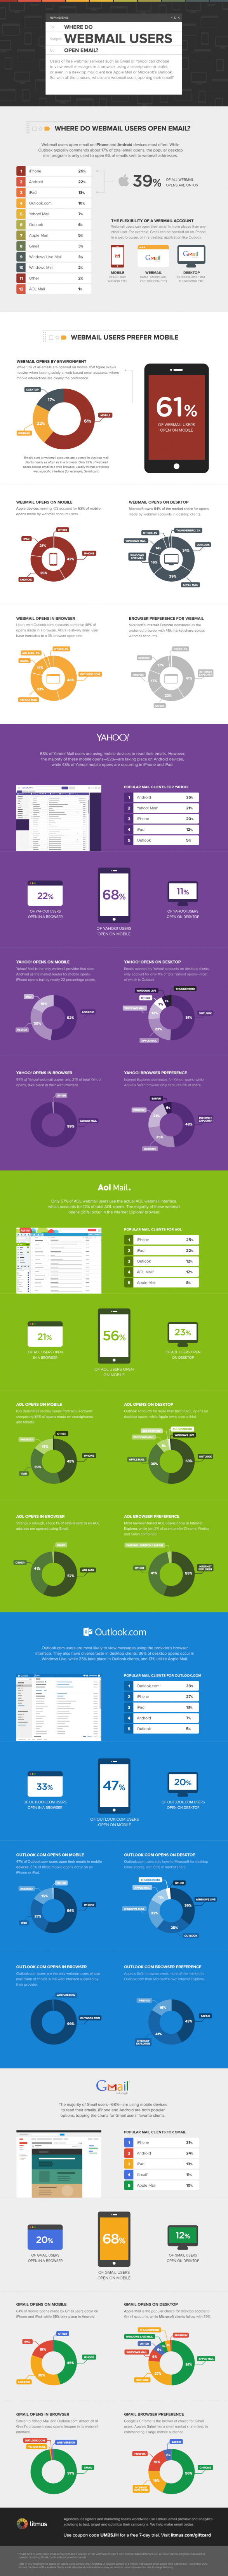 Have Webmail Users Gone Mobile?